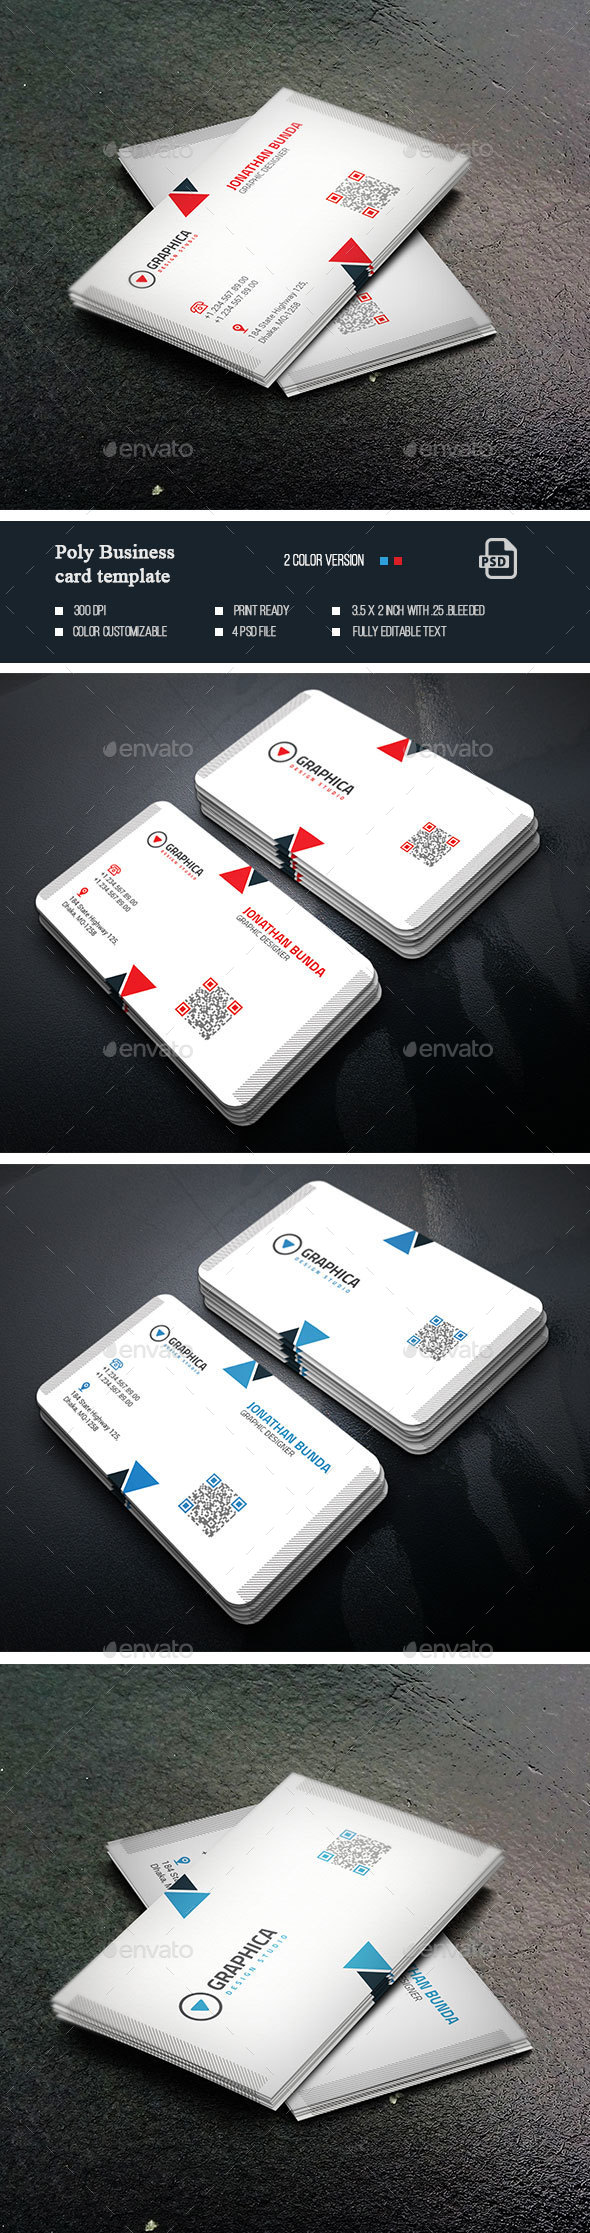 Poly Business Card - Business Cards Print Templates